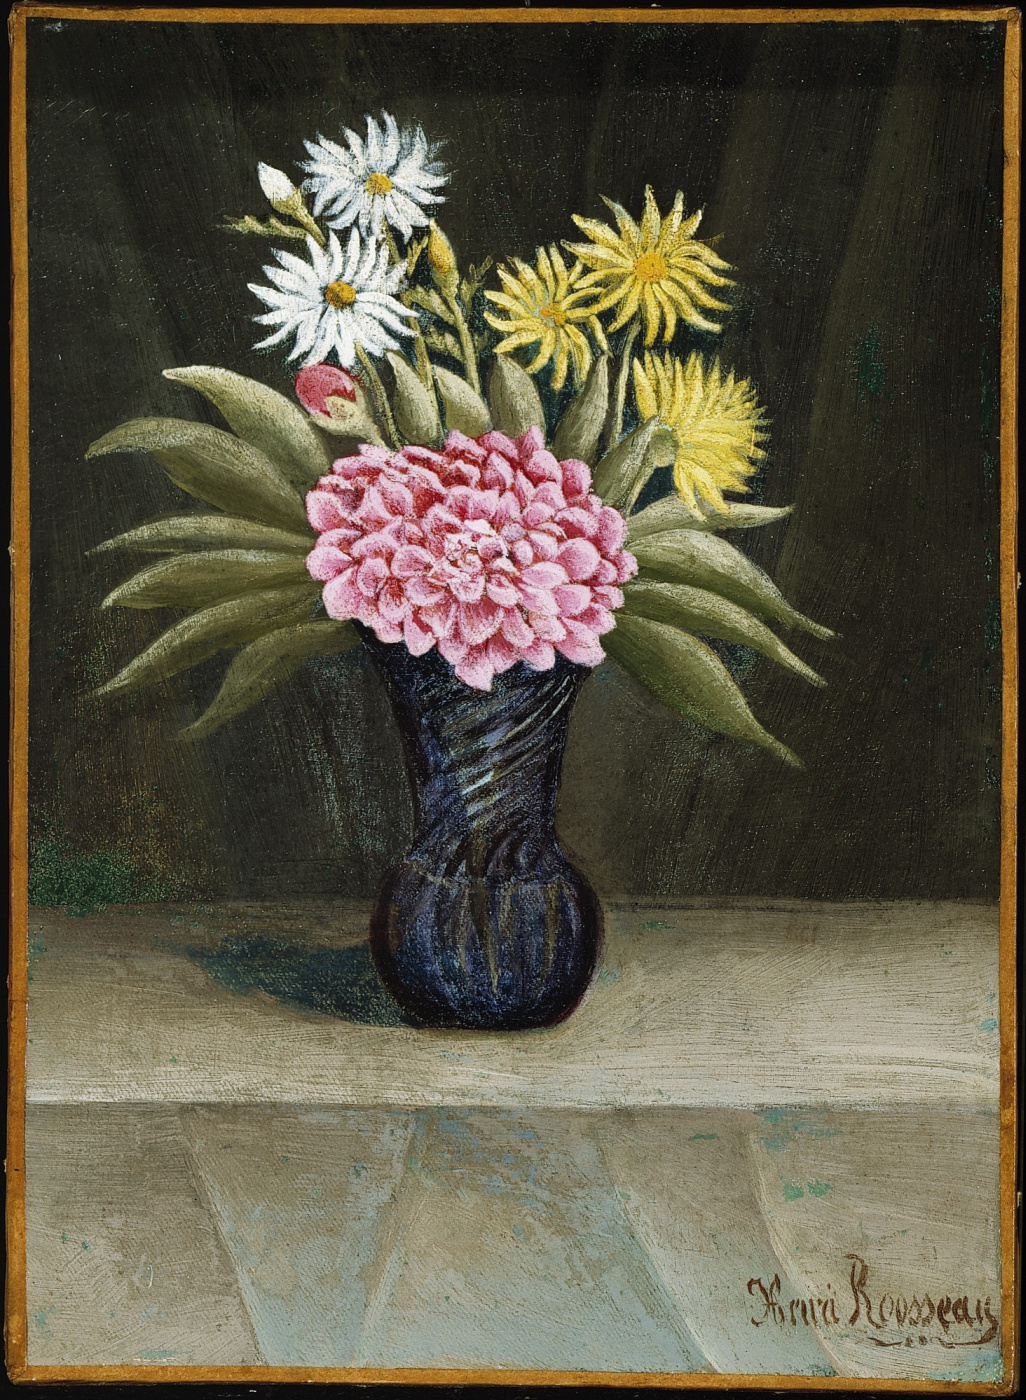 Henri Rousseau. Vase of Flowers